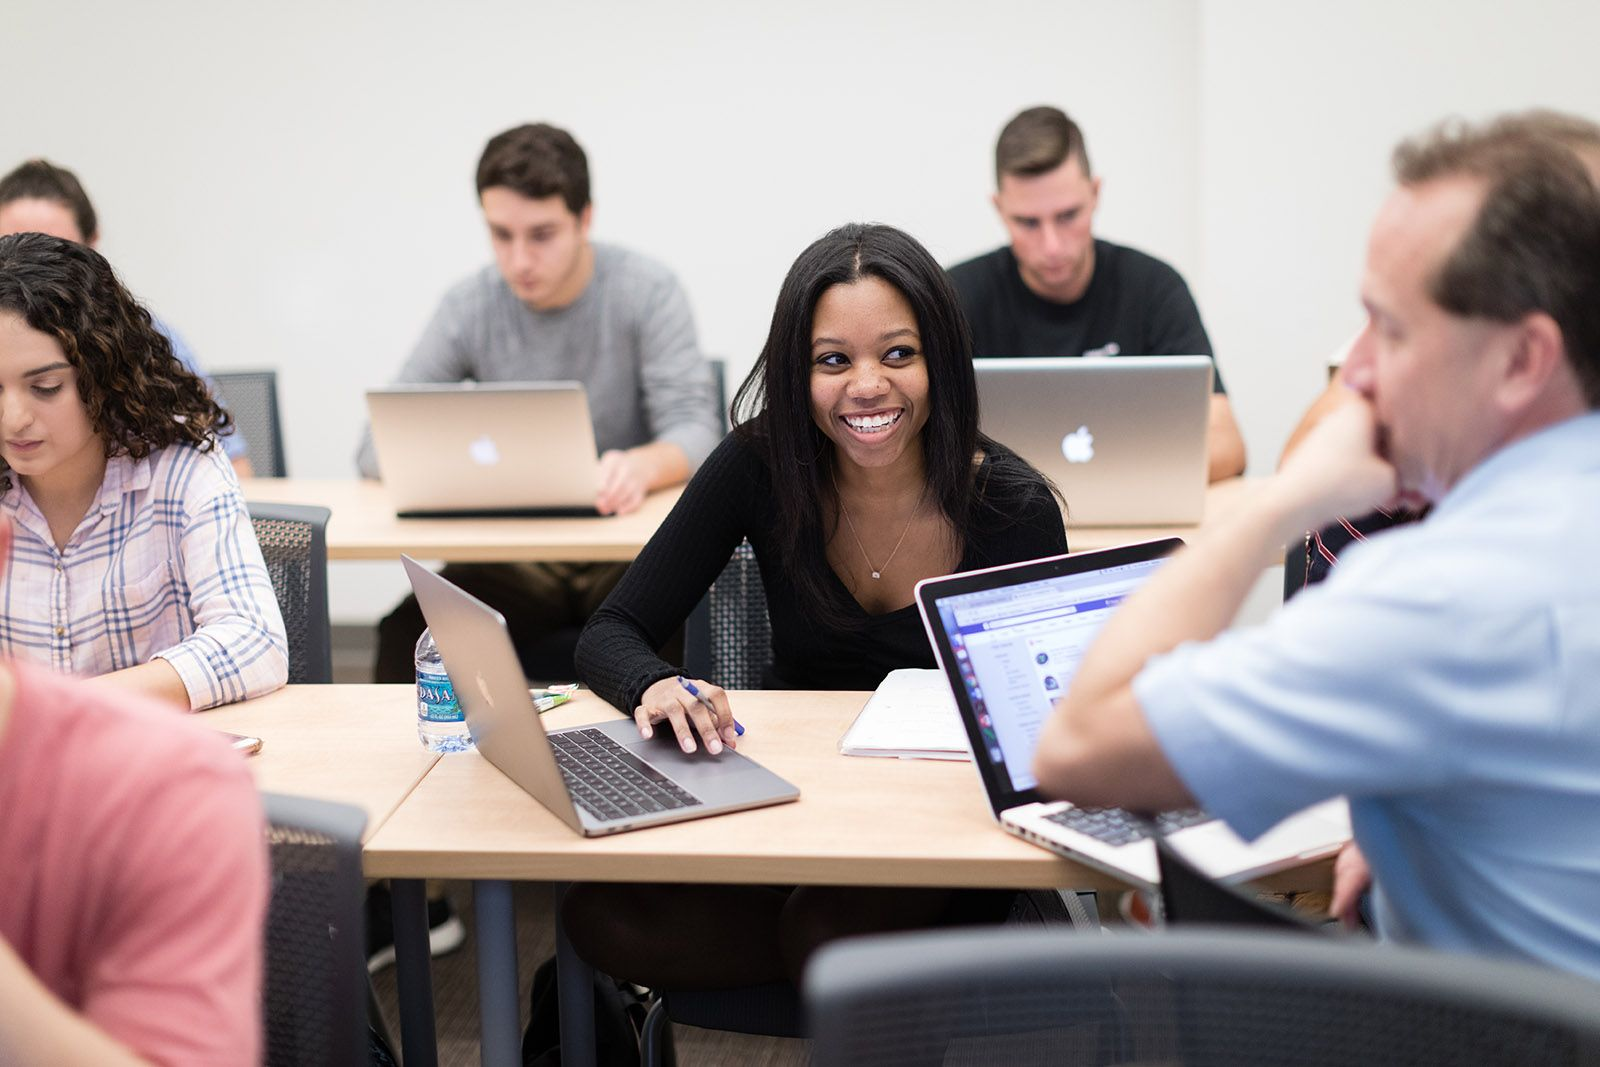 Rollins students hard at work in class.